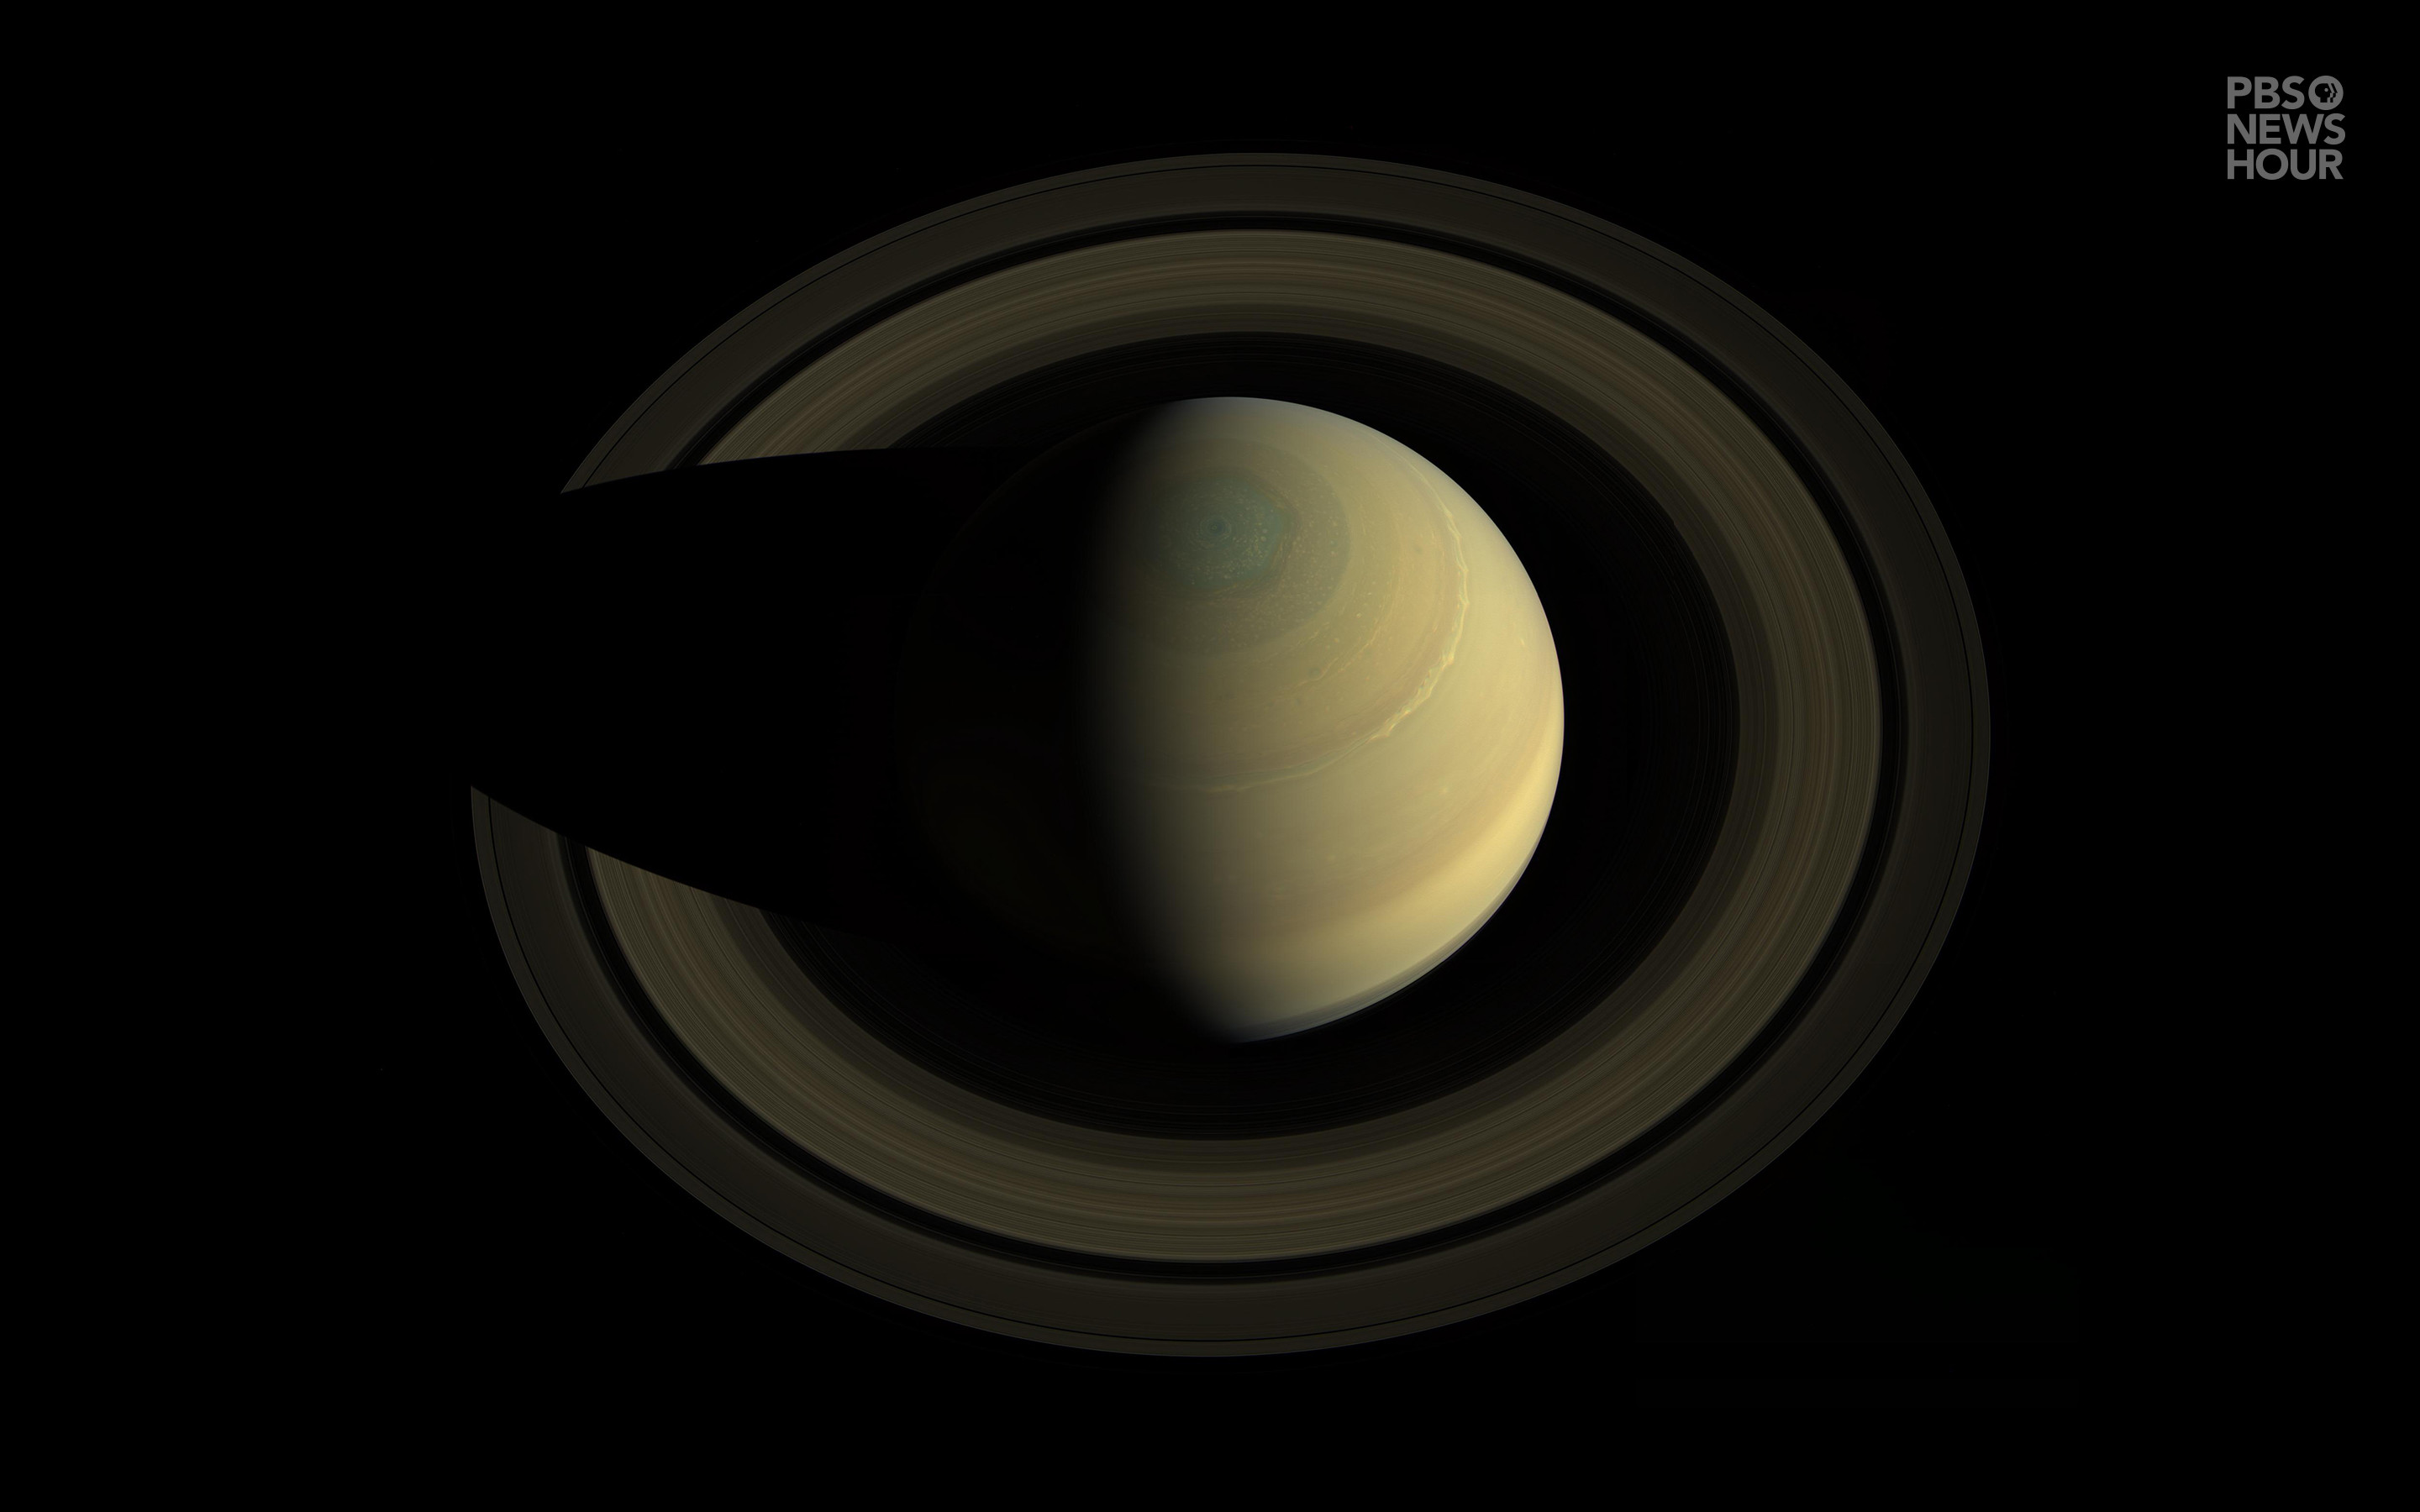 2880x1800 Saturn's mysterious six-sided weather pattern known as the hexagon is  visible around planet's north